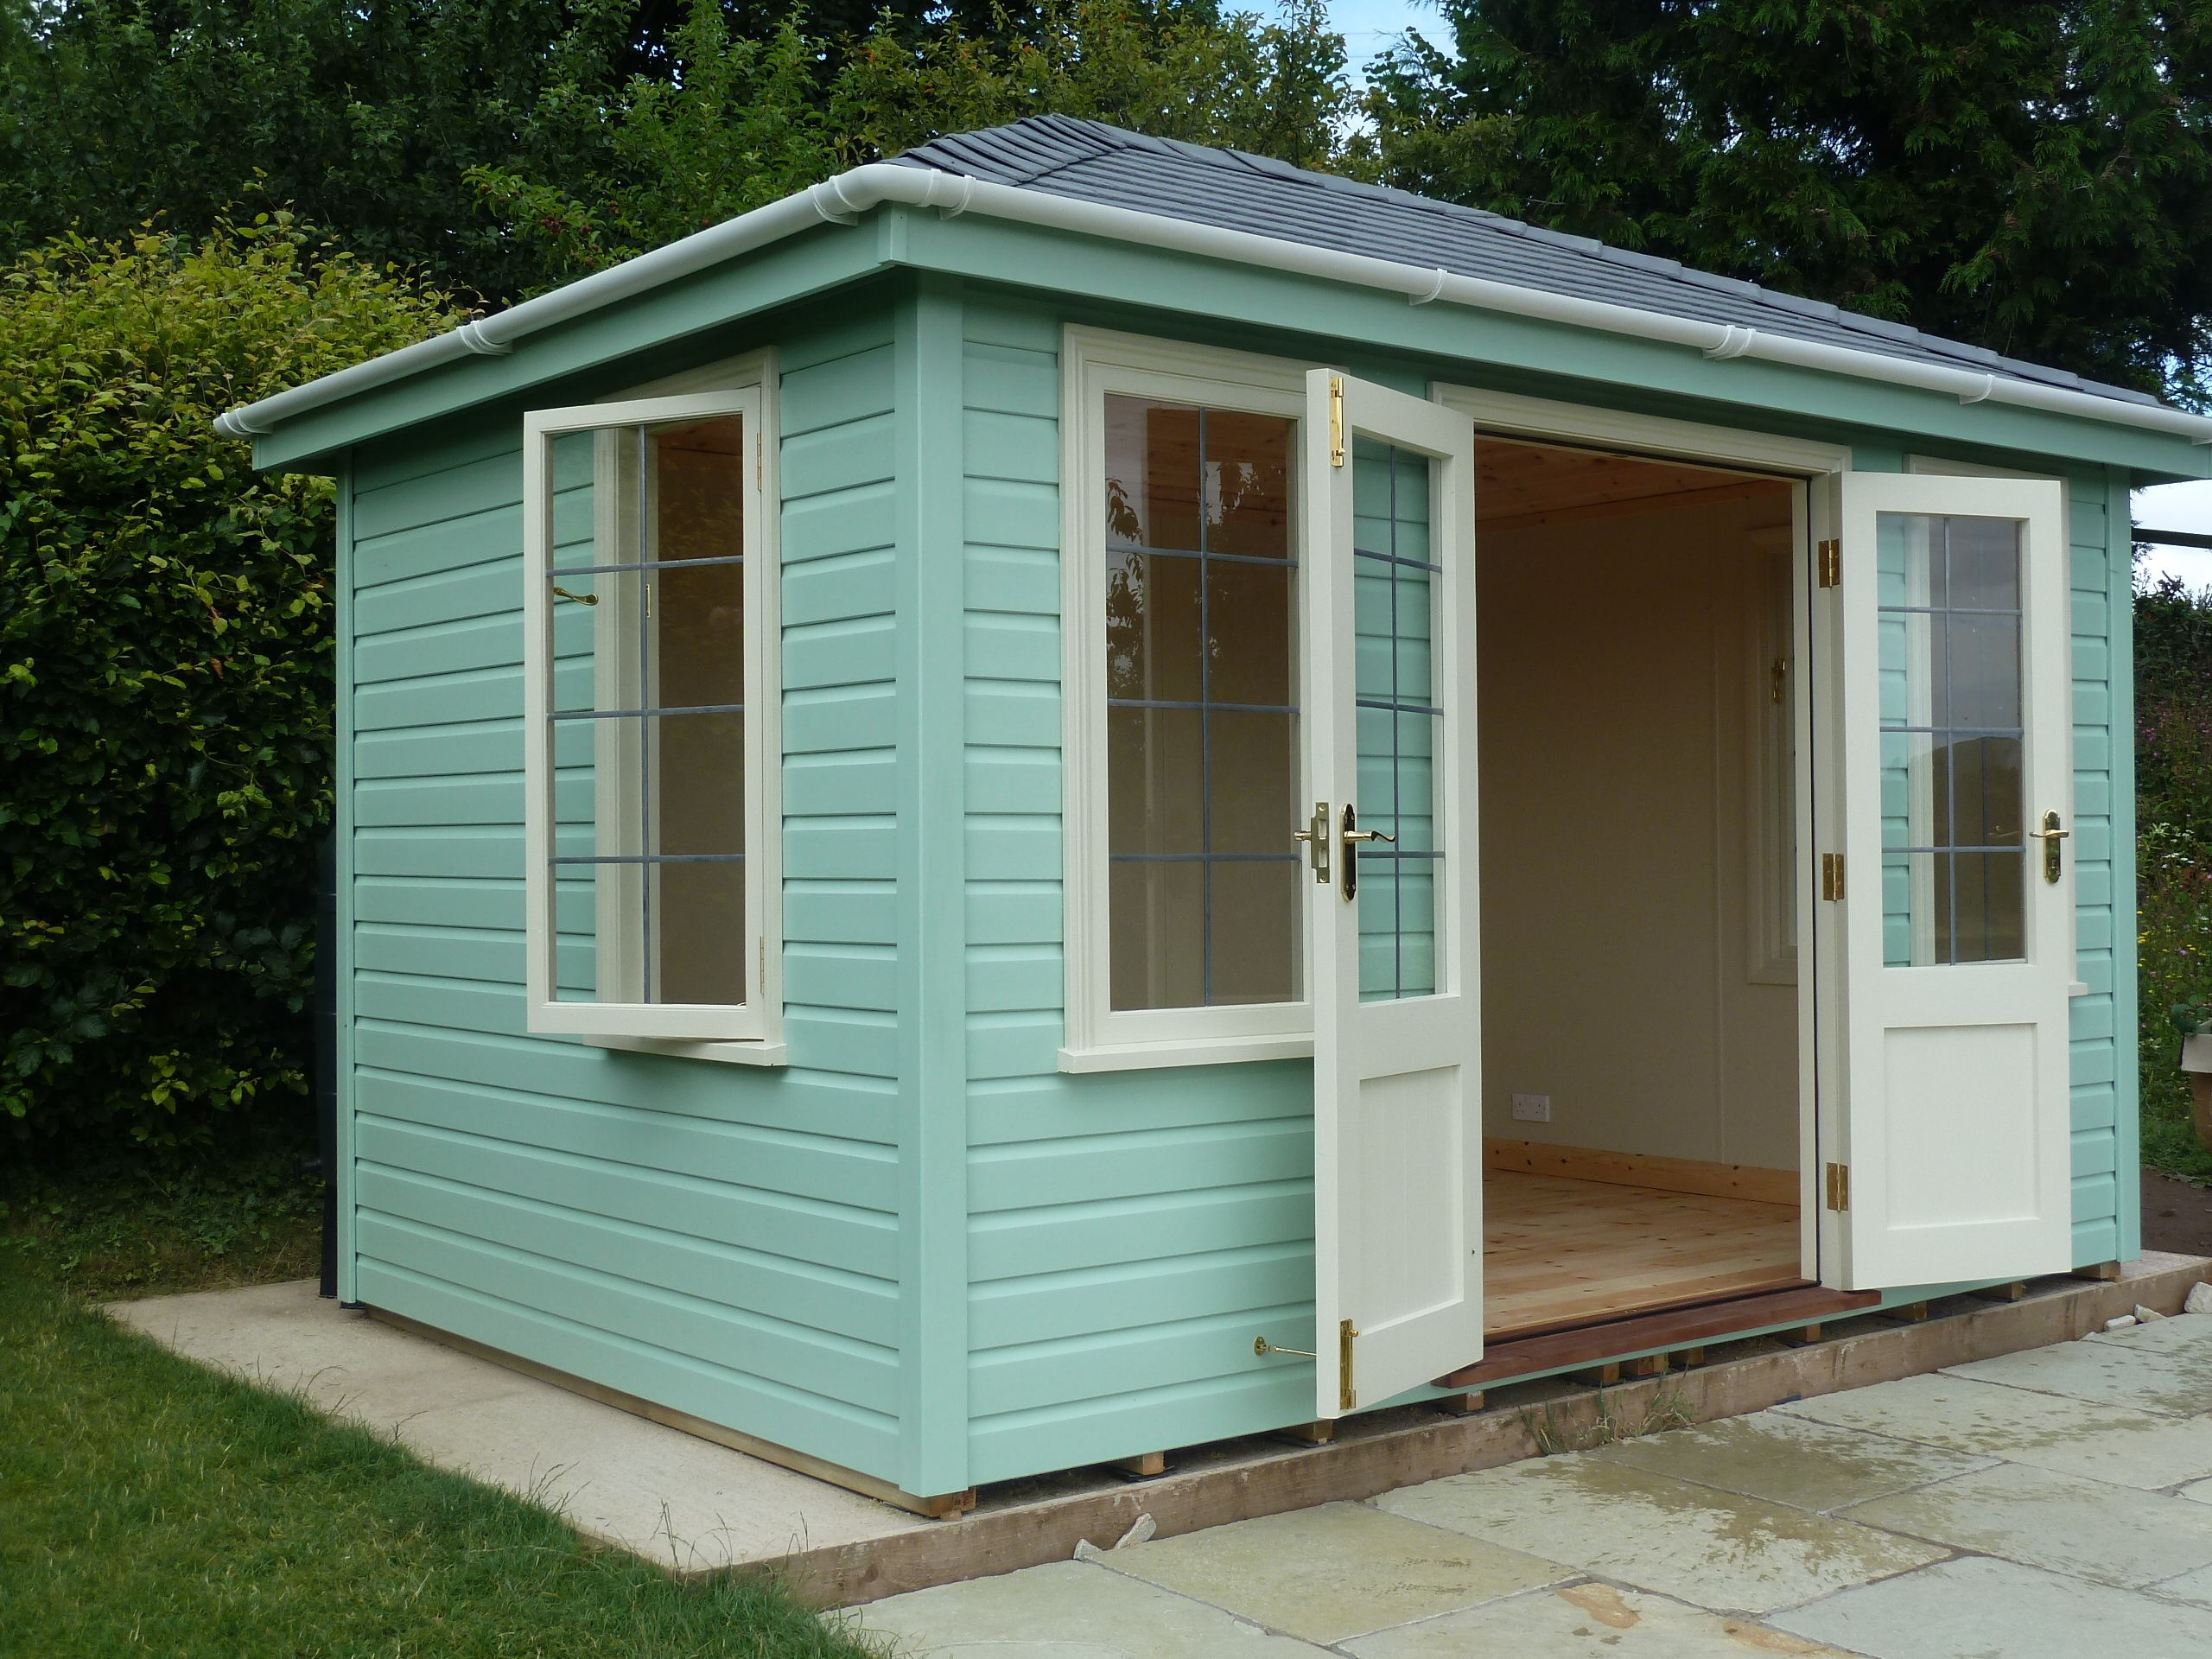 Summerhouse The Handmade Garden Storage Company Devon